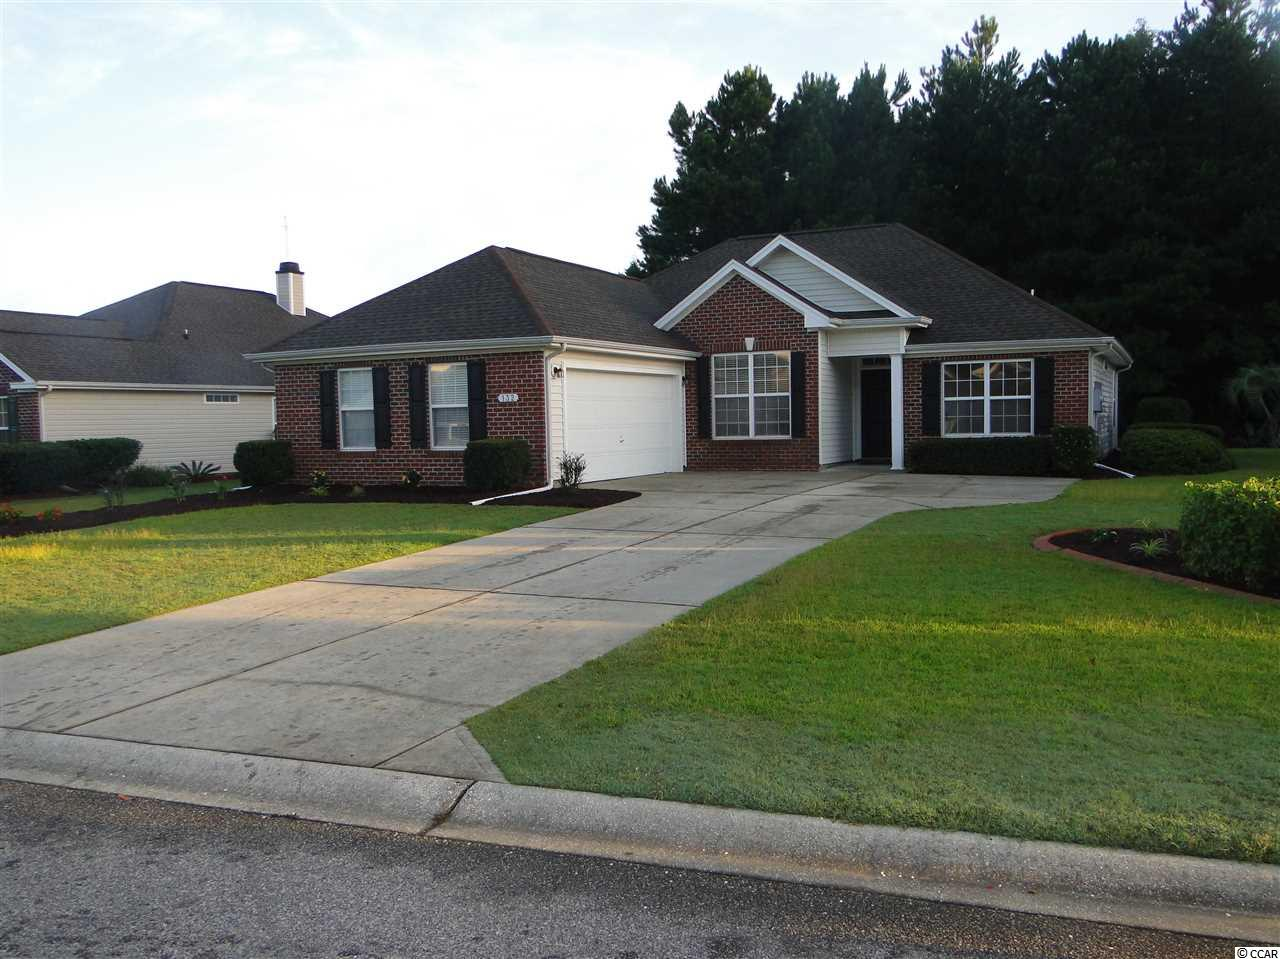 Don't miss out on this great home in the Links section of the International Club. This home features three bedrooms plus a bonus/office. Freshly painted with beautiful hardwood oak flooring. New landscaping recently installed with low maintenance brick and vinyl exterior. Only minutes from the beach, shopping, and all the Grand Strand has to offer. Hurry up and schedule a showing today. This one won't last long at this price!